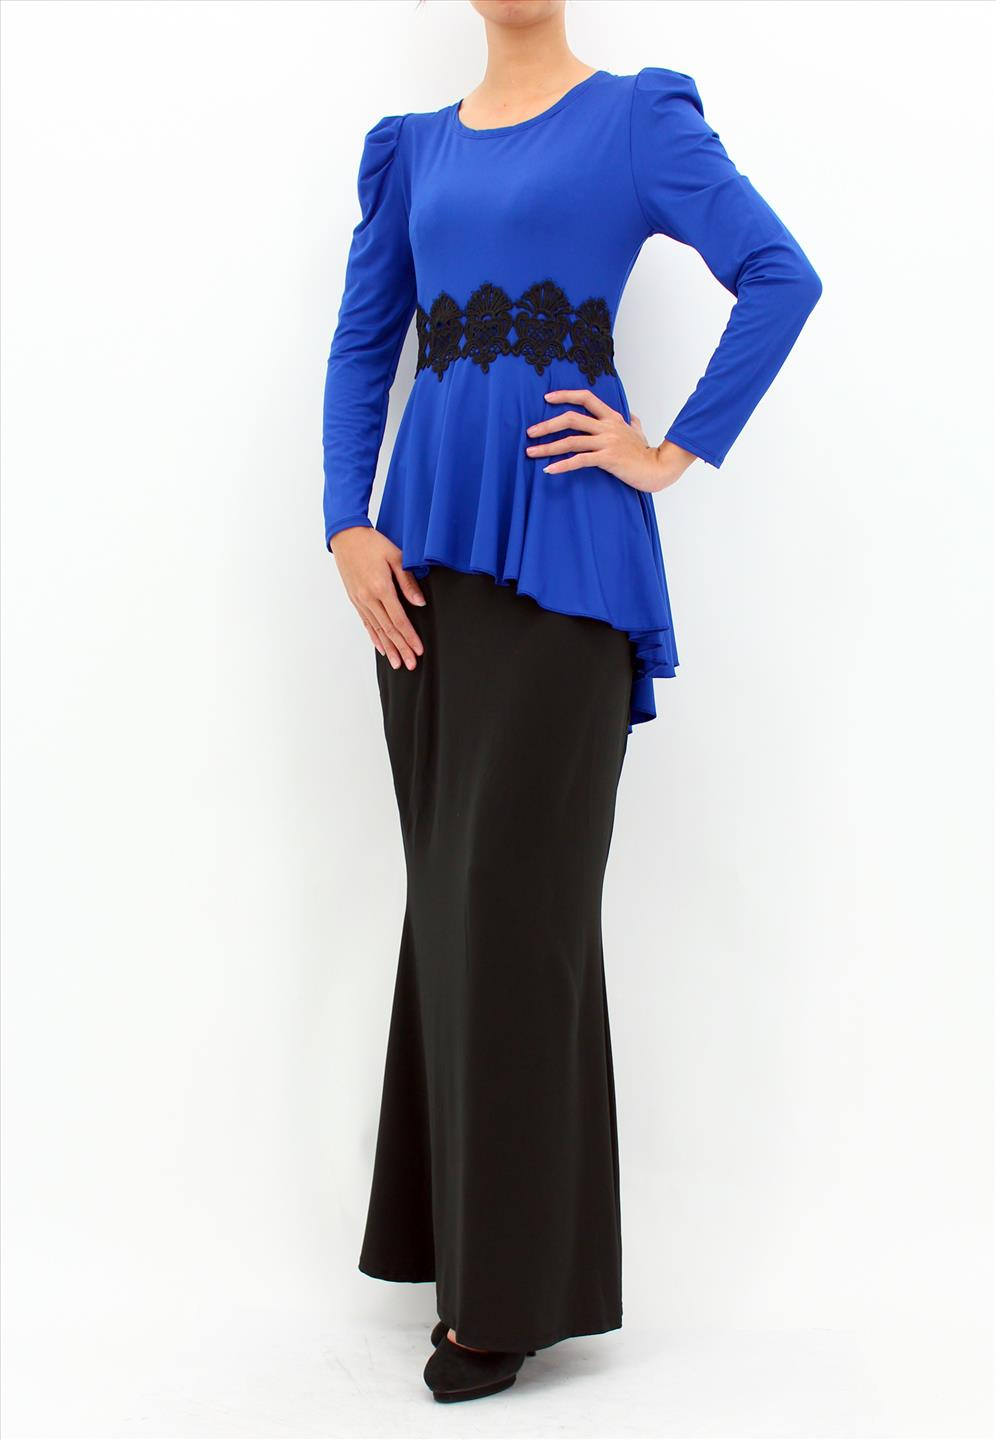 Baju Model Peplum | hairstylegalleries.com